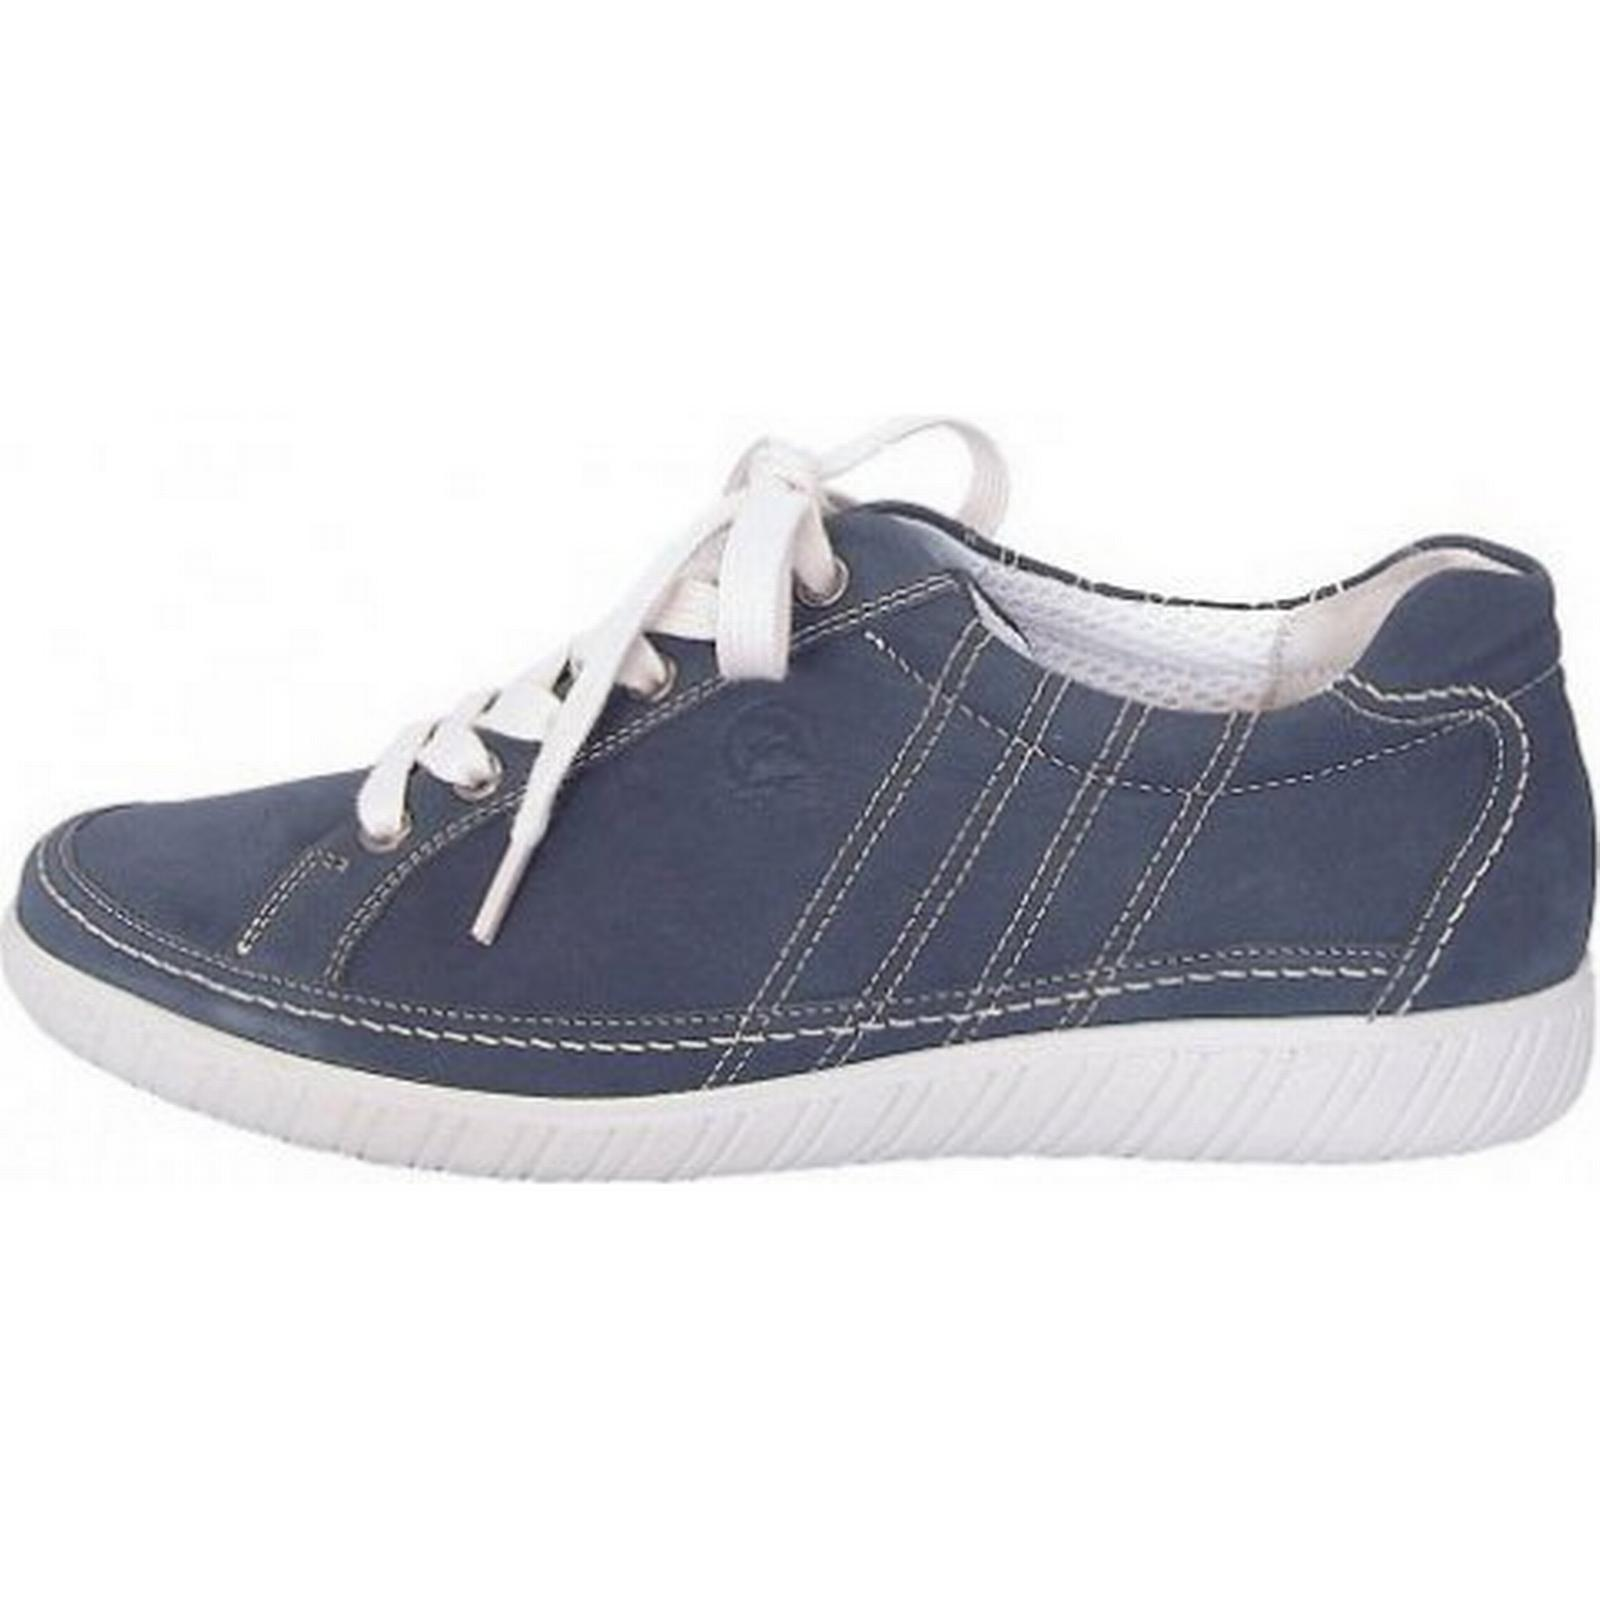 Gabor Amulet Womens Wide Fit In Pumps In Fit Blue Size: 2.5, Colour: NAVY 361553